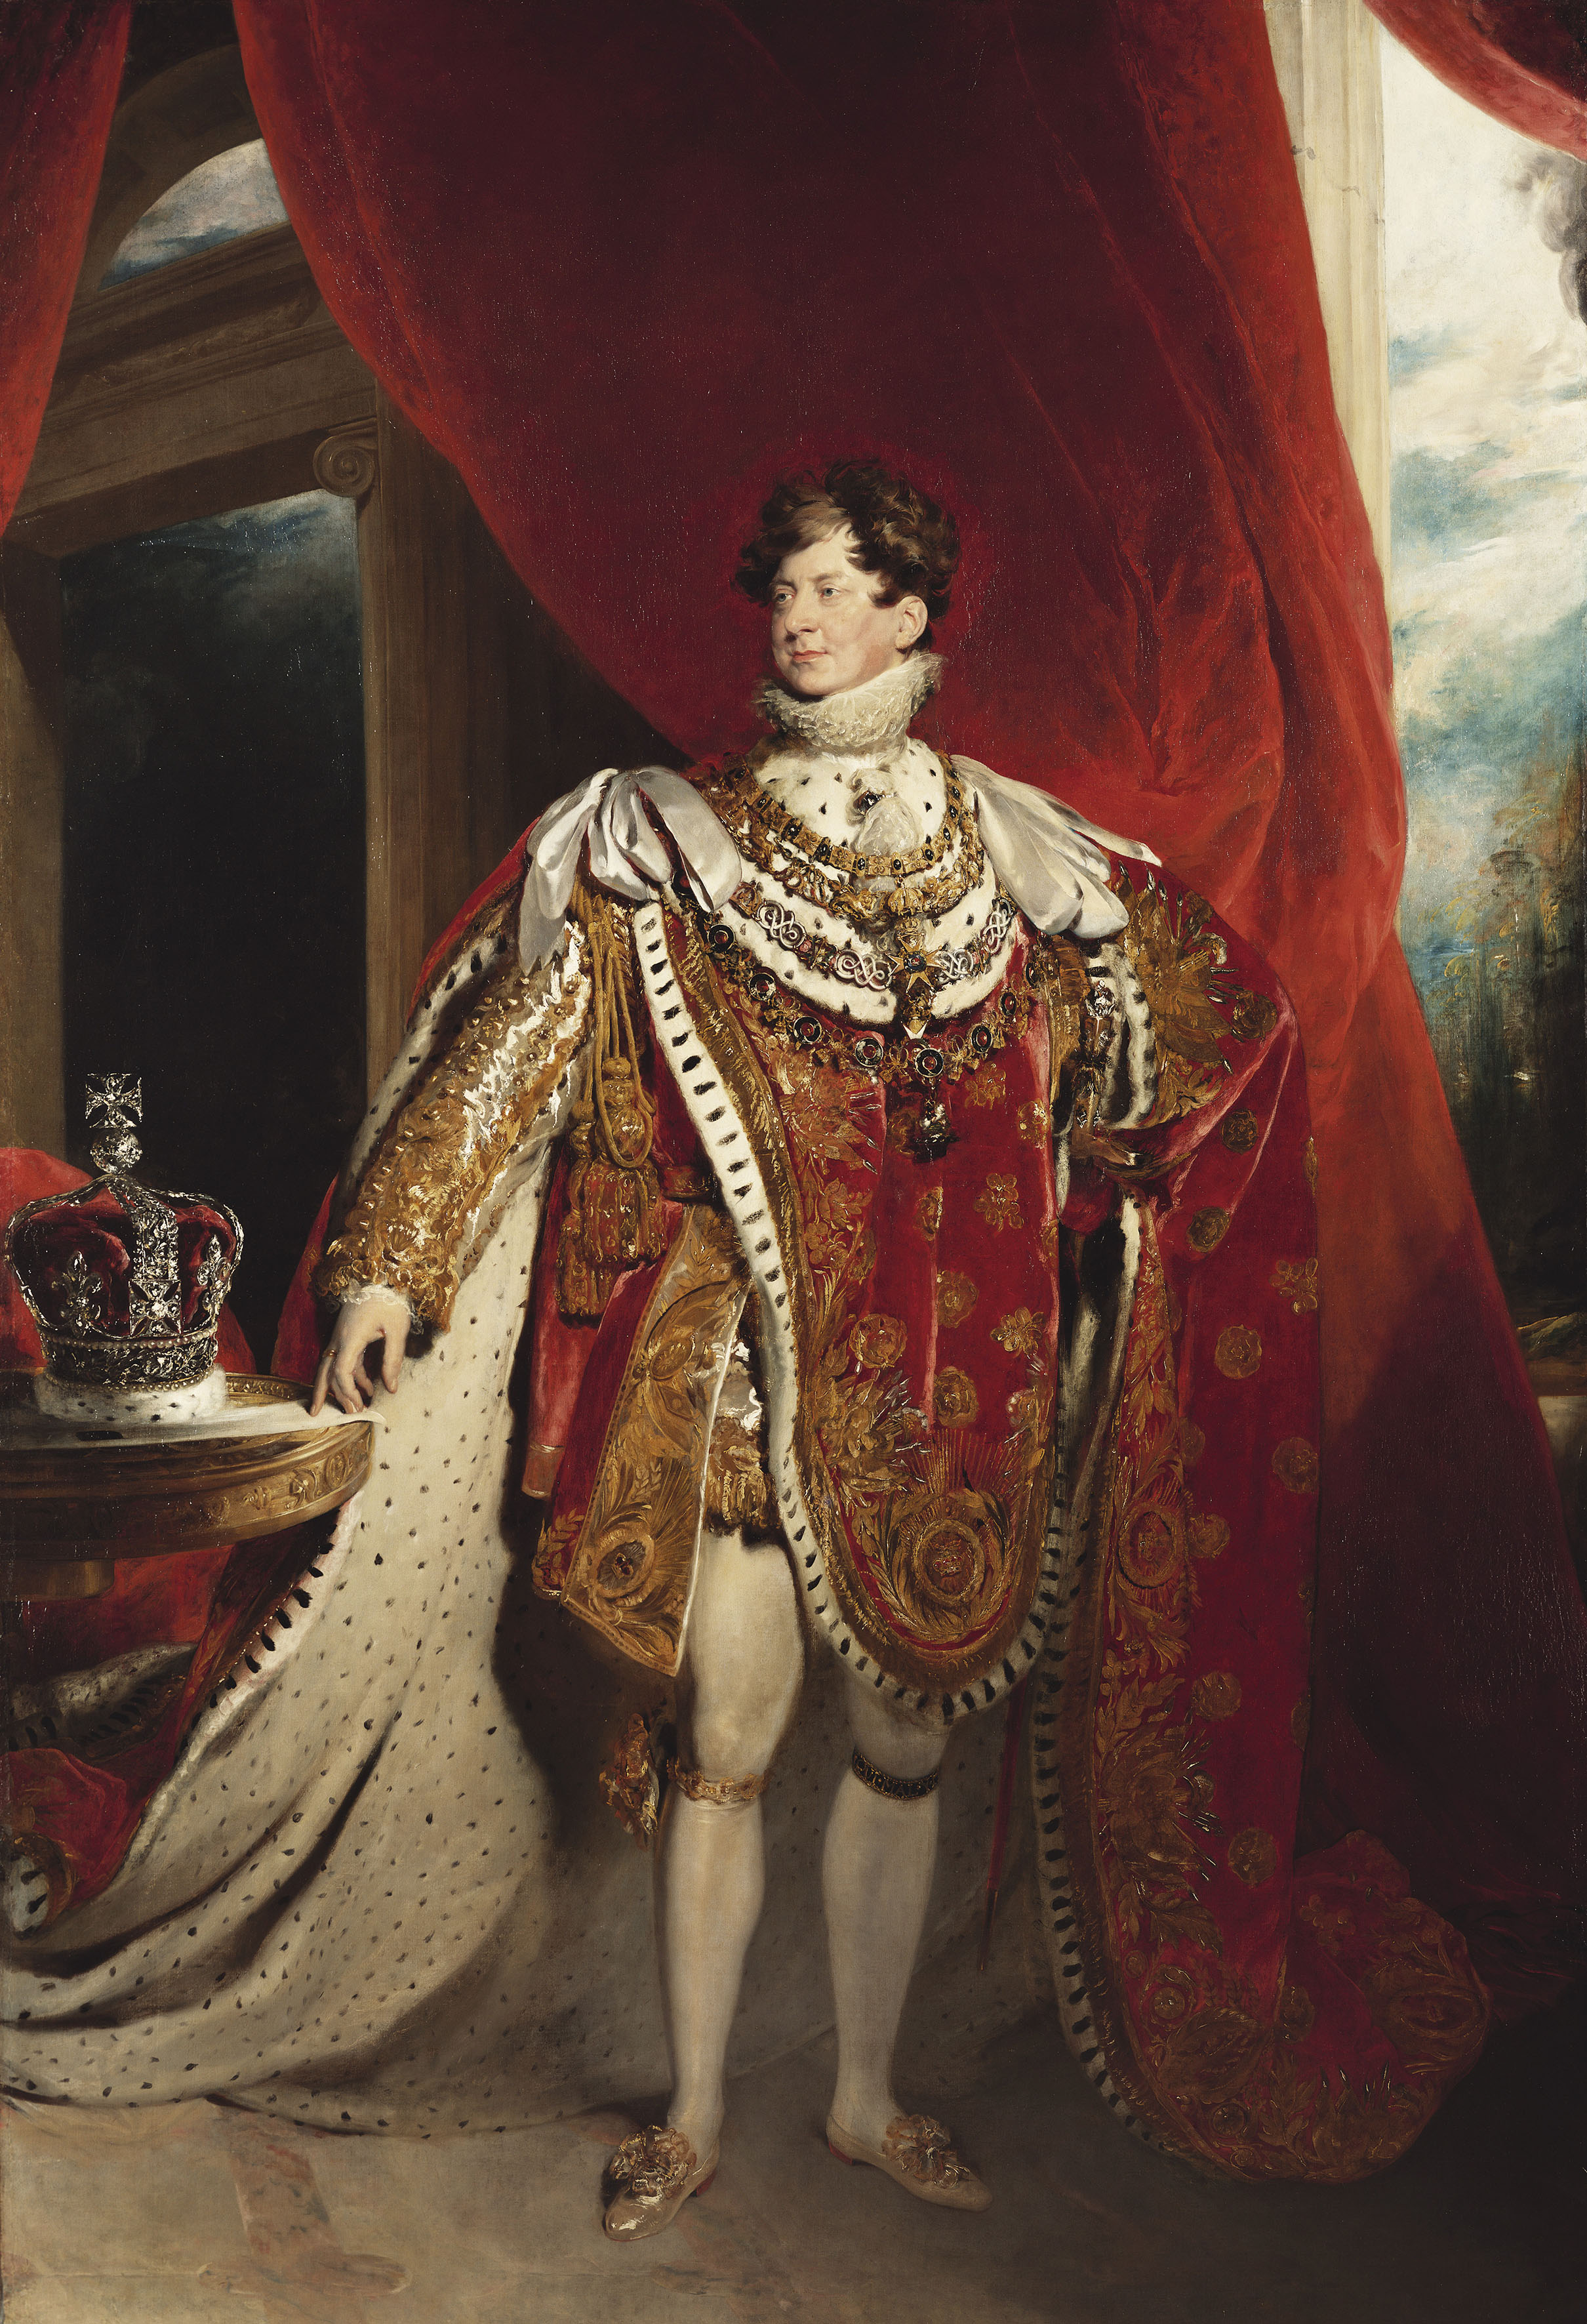 Sir Thomas Lawrence, George IV (1762-1830), 1821  Credit: Royal Collection Trust / (c) Her Majesty Queen Elizabeth II 2019